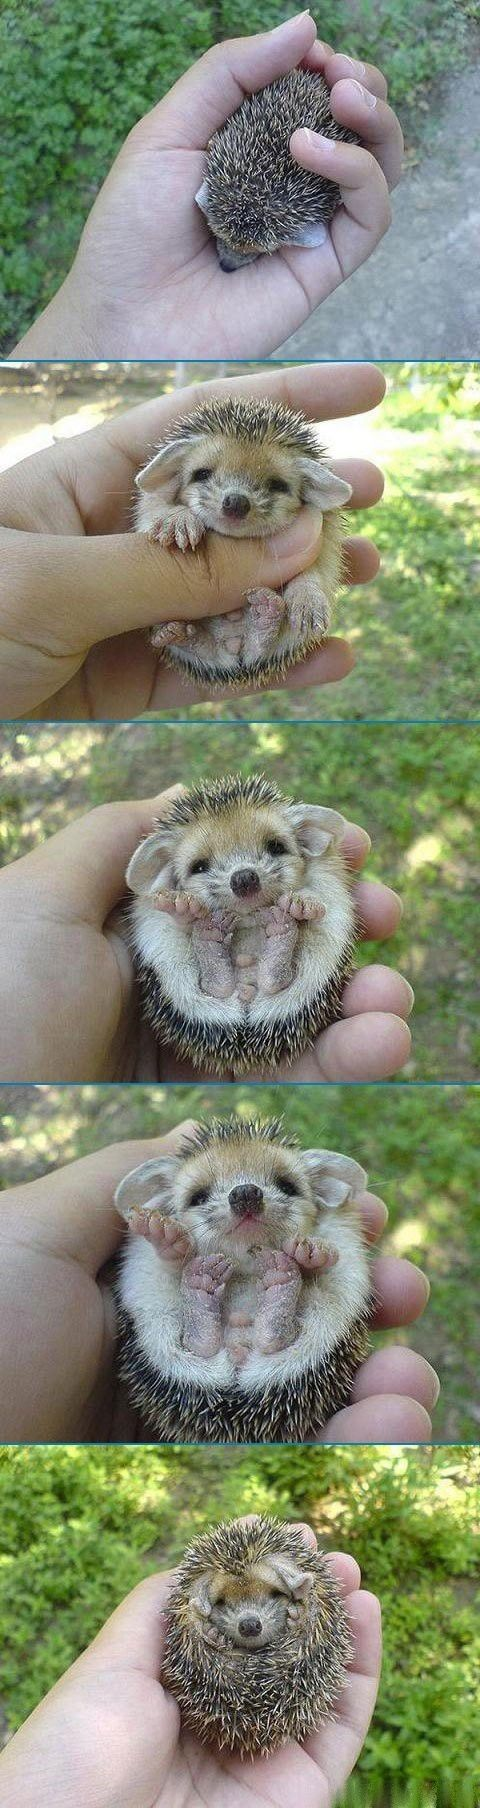 best キュン死 images on pinterest fluffy pets baby puppies and